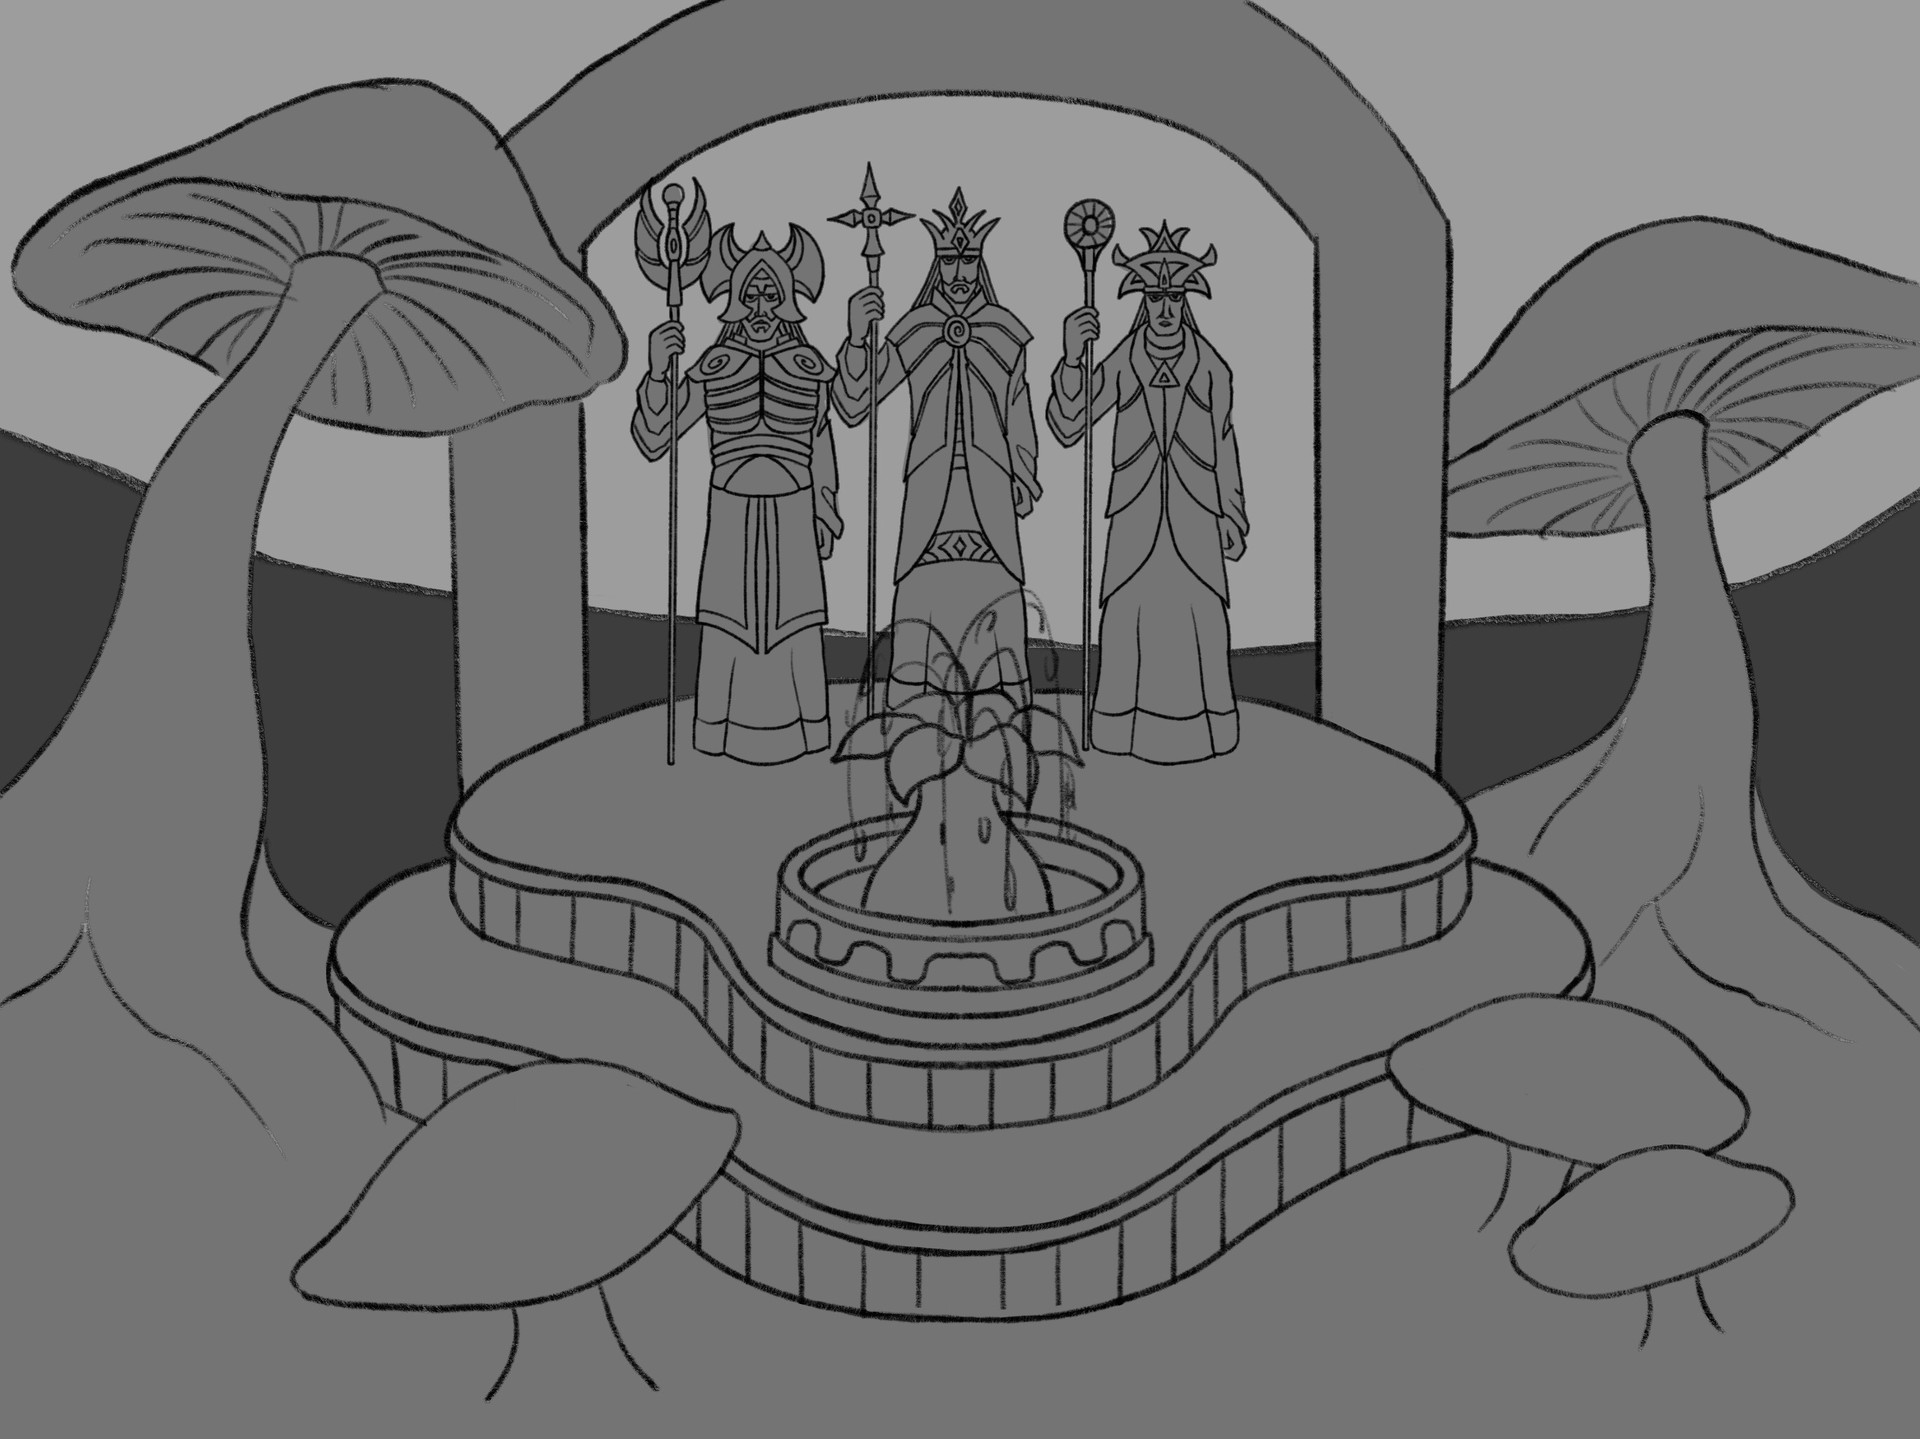 Statues Courtyard Sketch